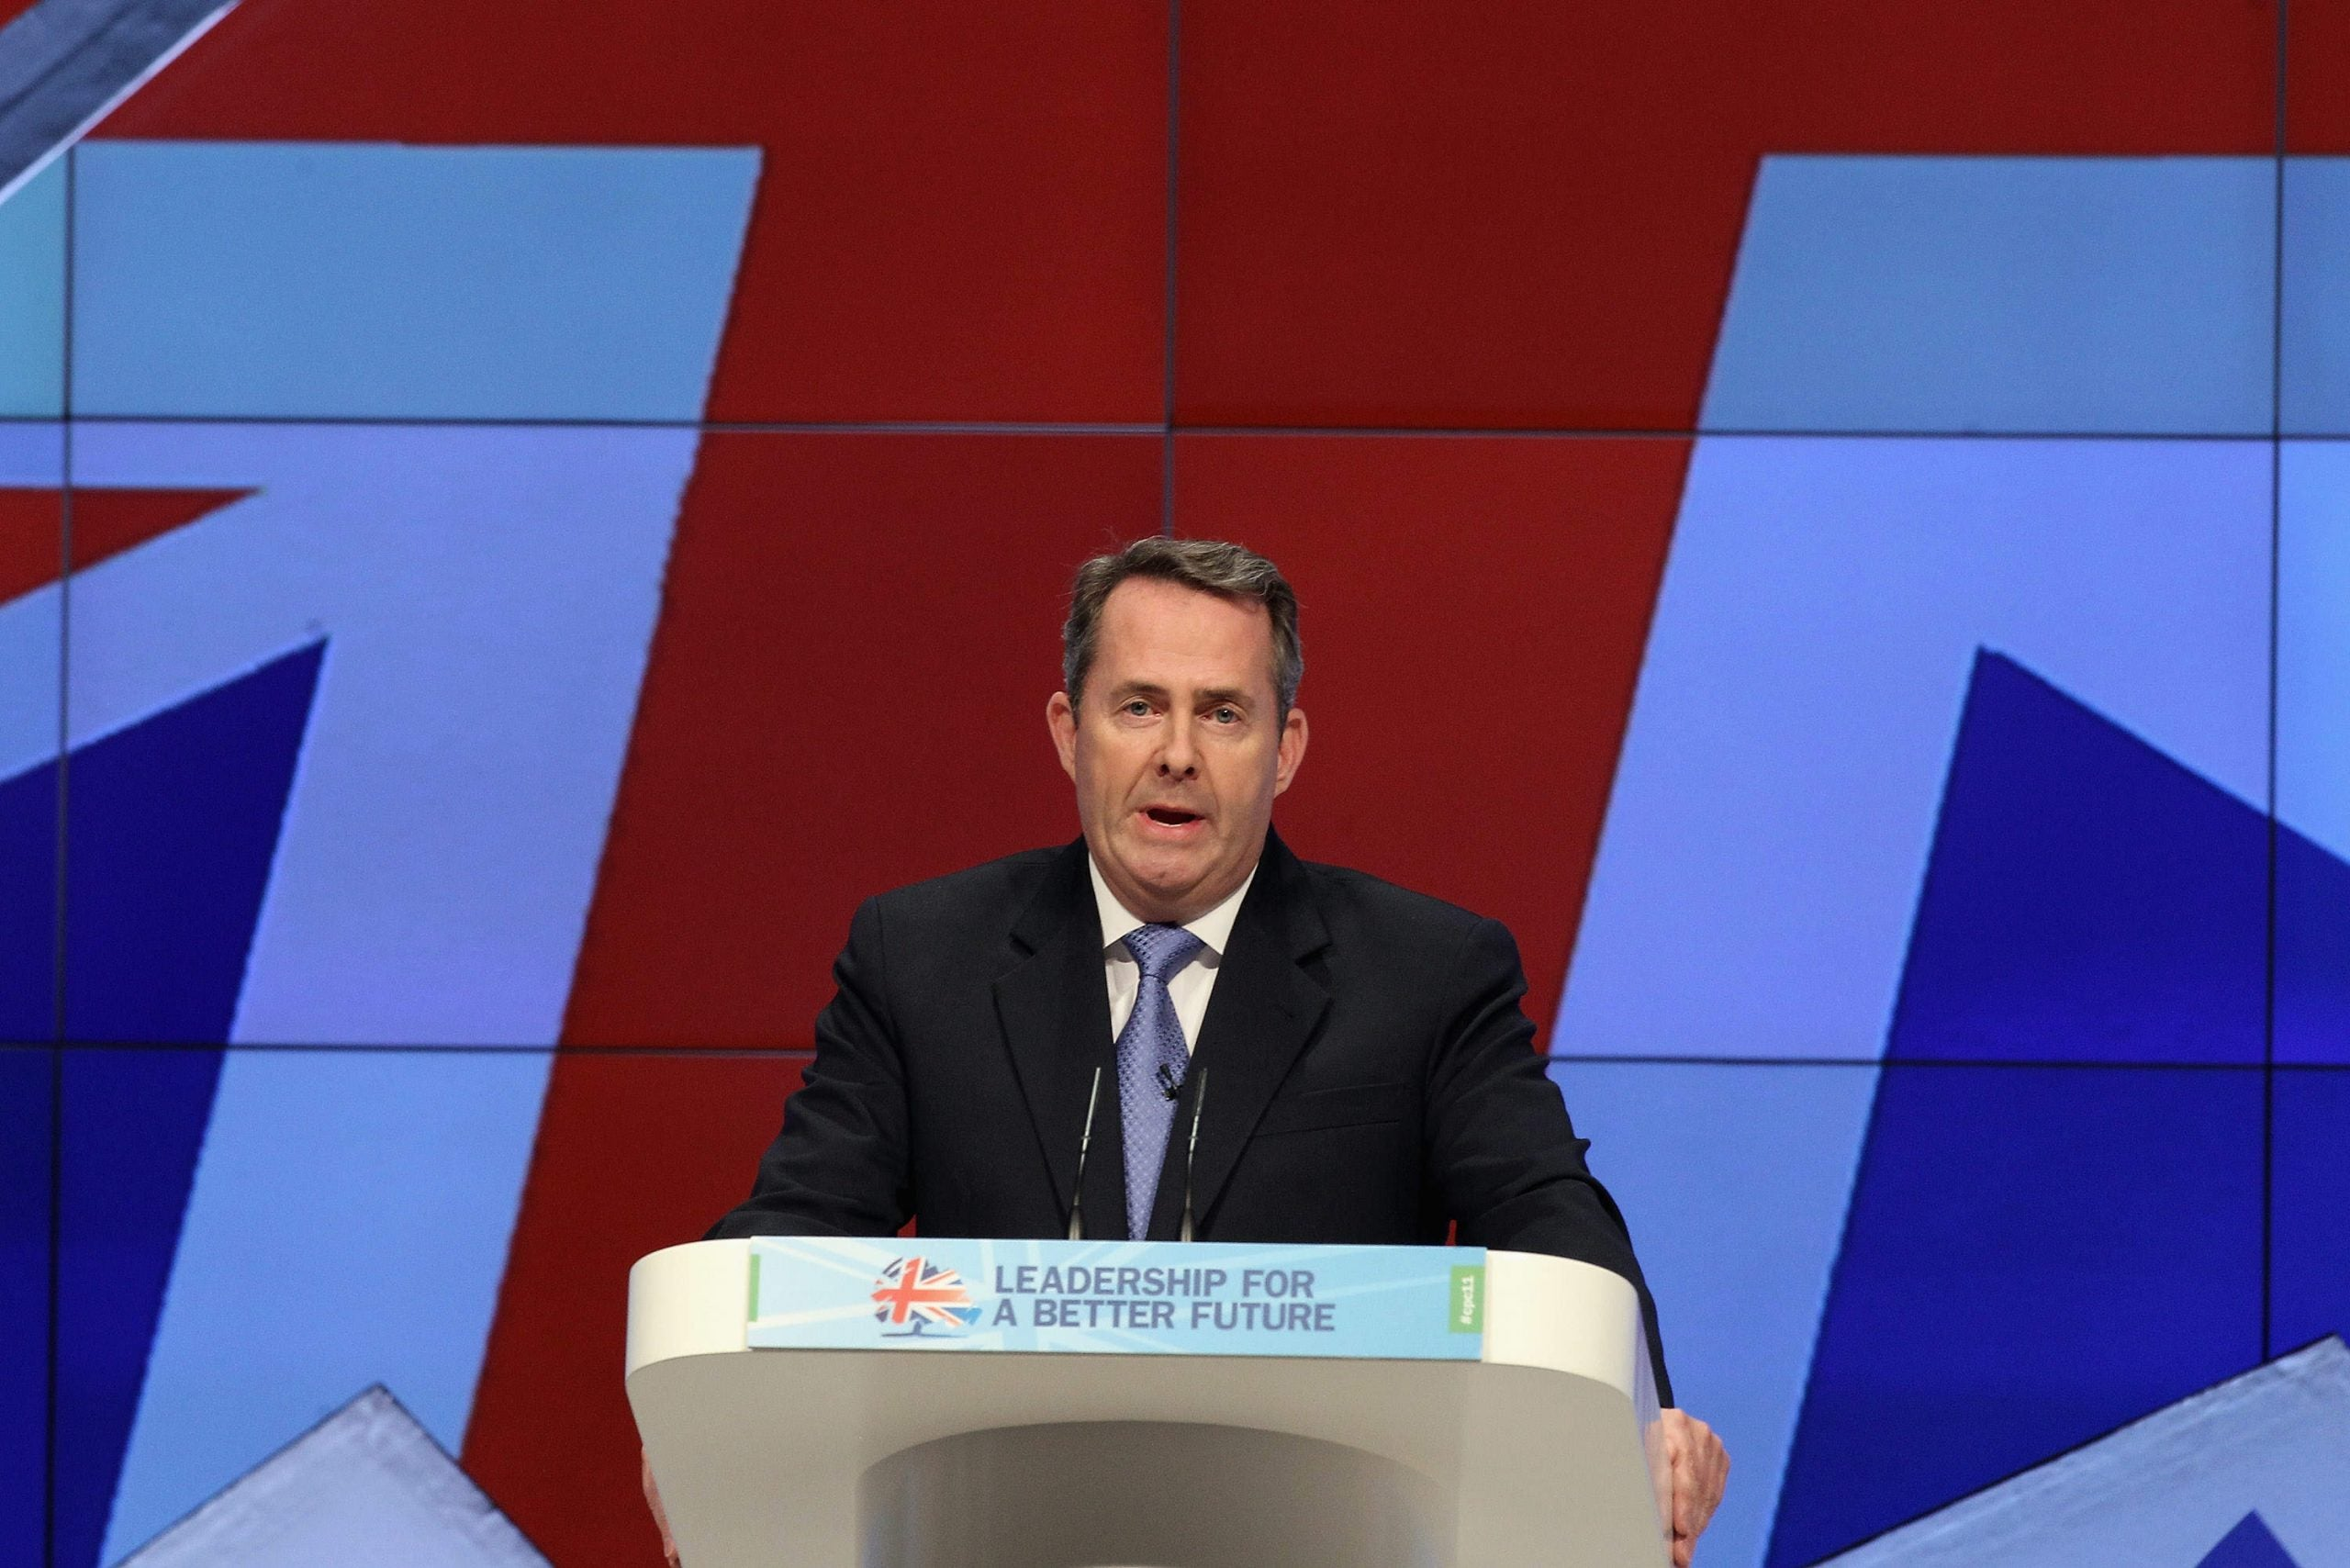 The Conservative Party and business have long had a rocky relationship